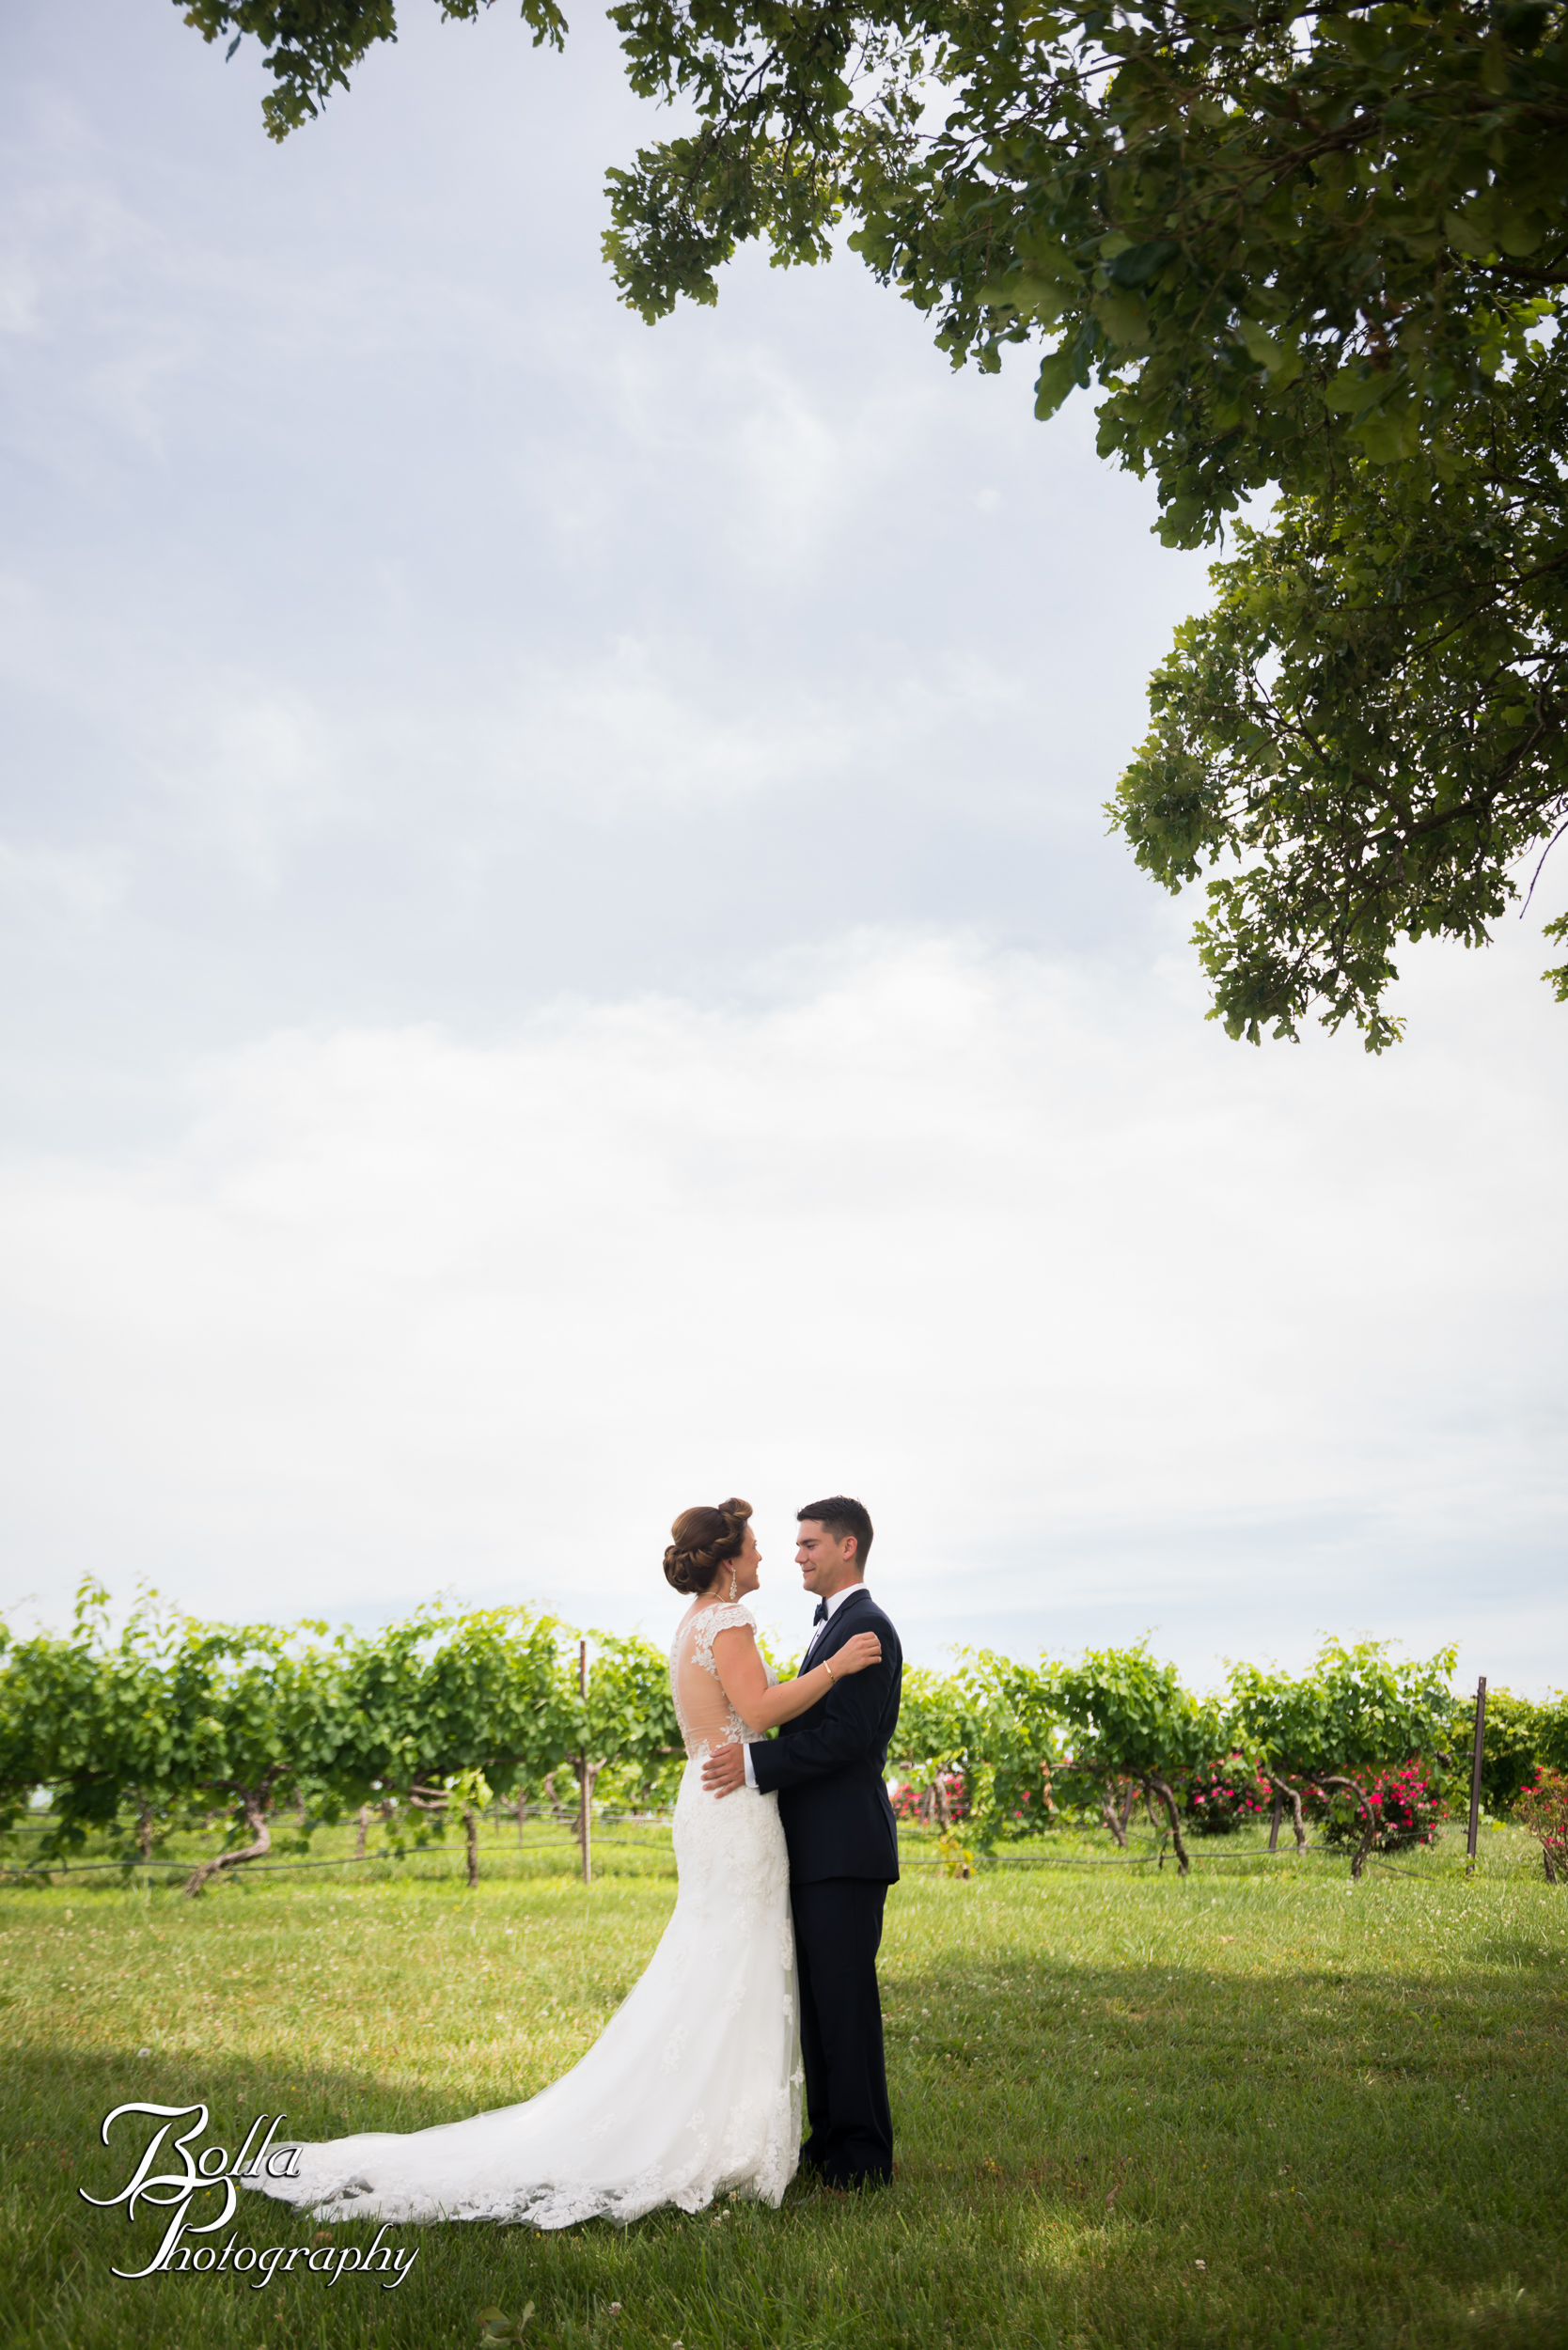 Bolla_photography_edwardsville_wedding_photographer_st_louis_weddings_Chaumette_winery_Mikusch-0134.jpg